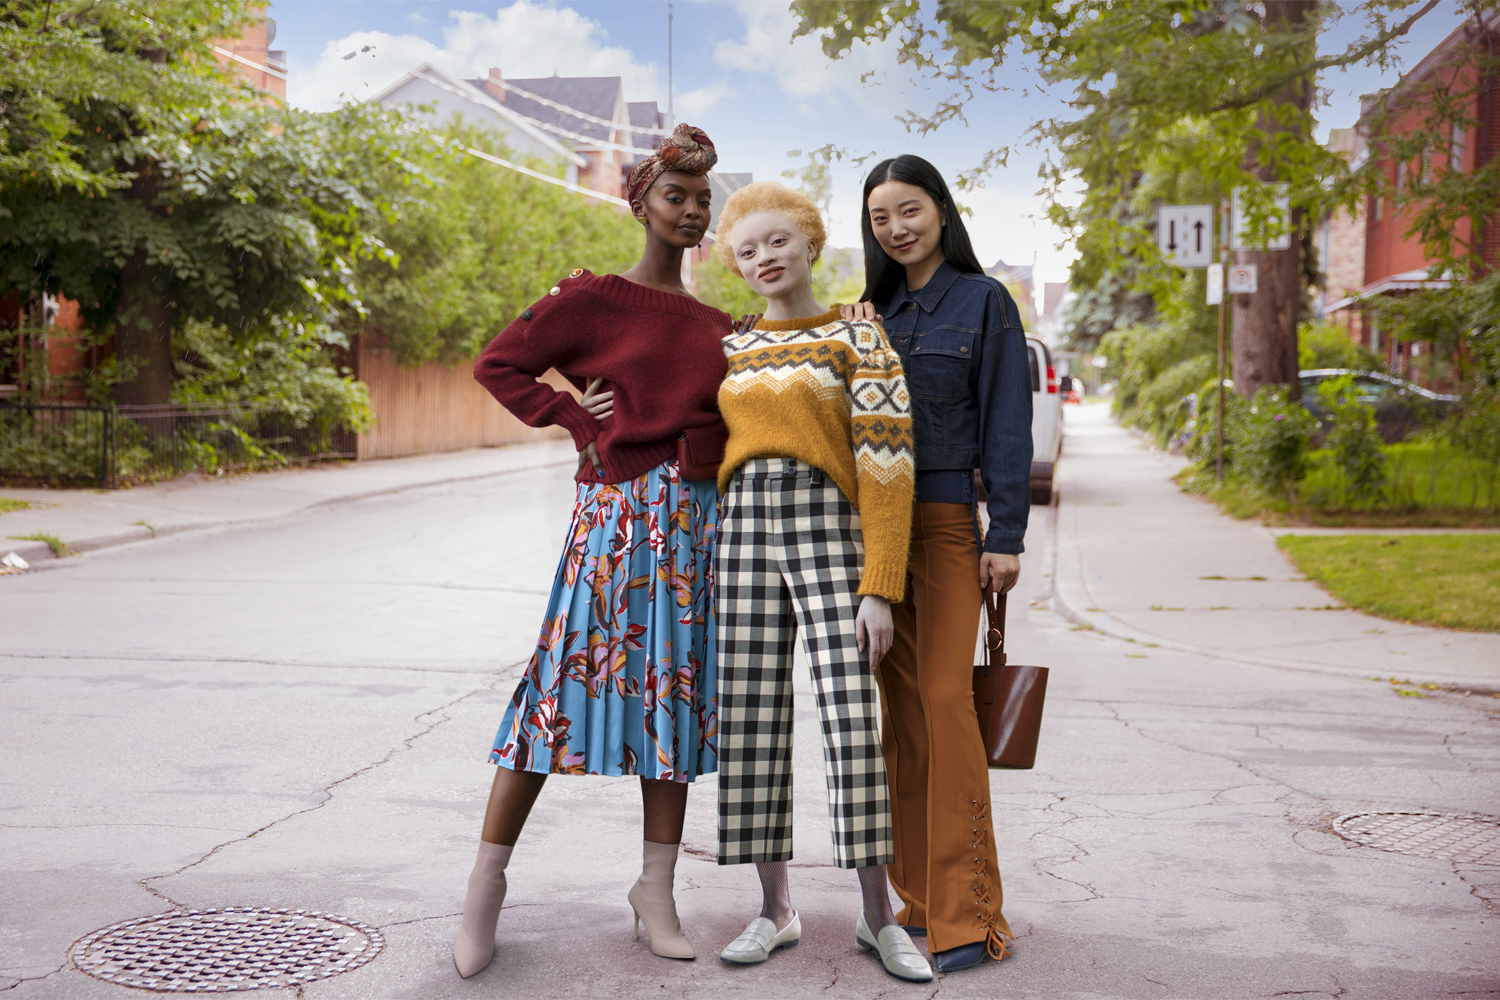 Introducing Nordstrom's First Canada-Wide Campaign